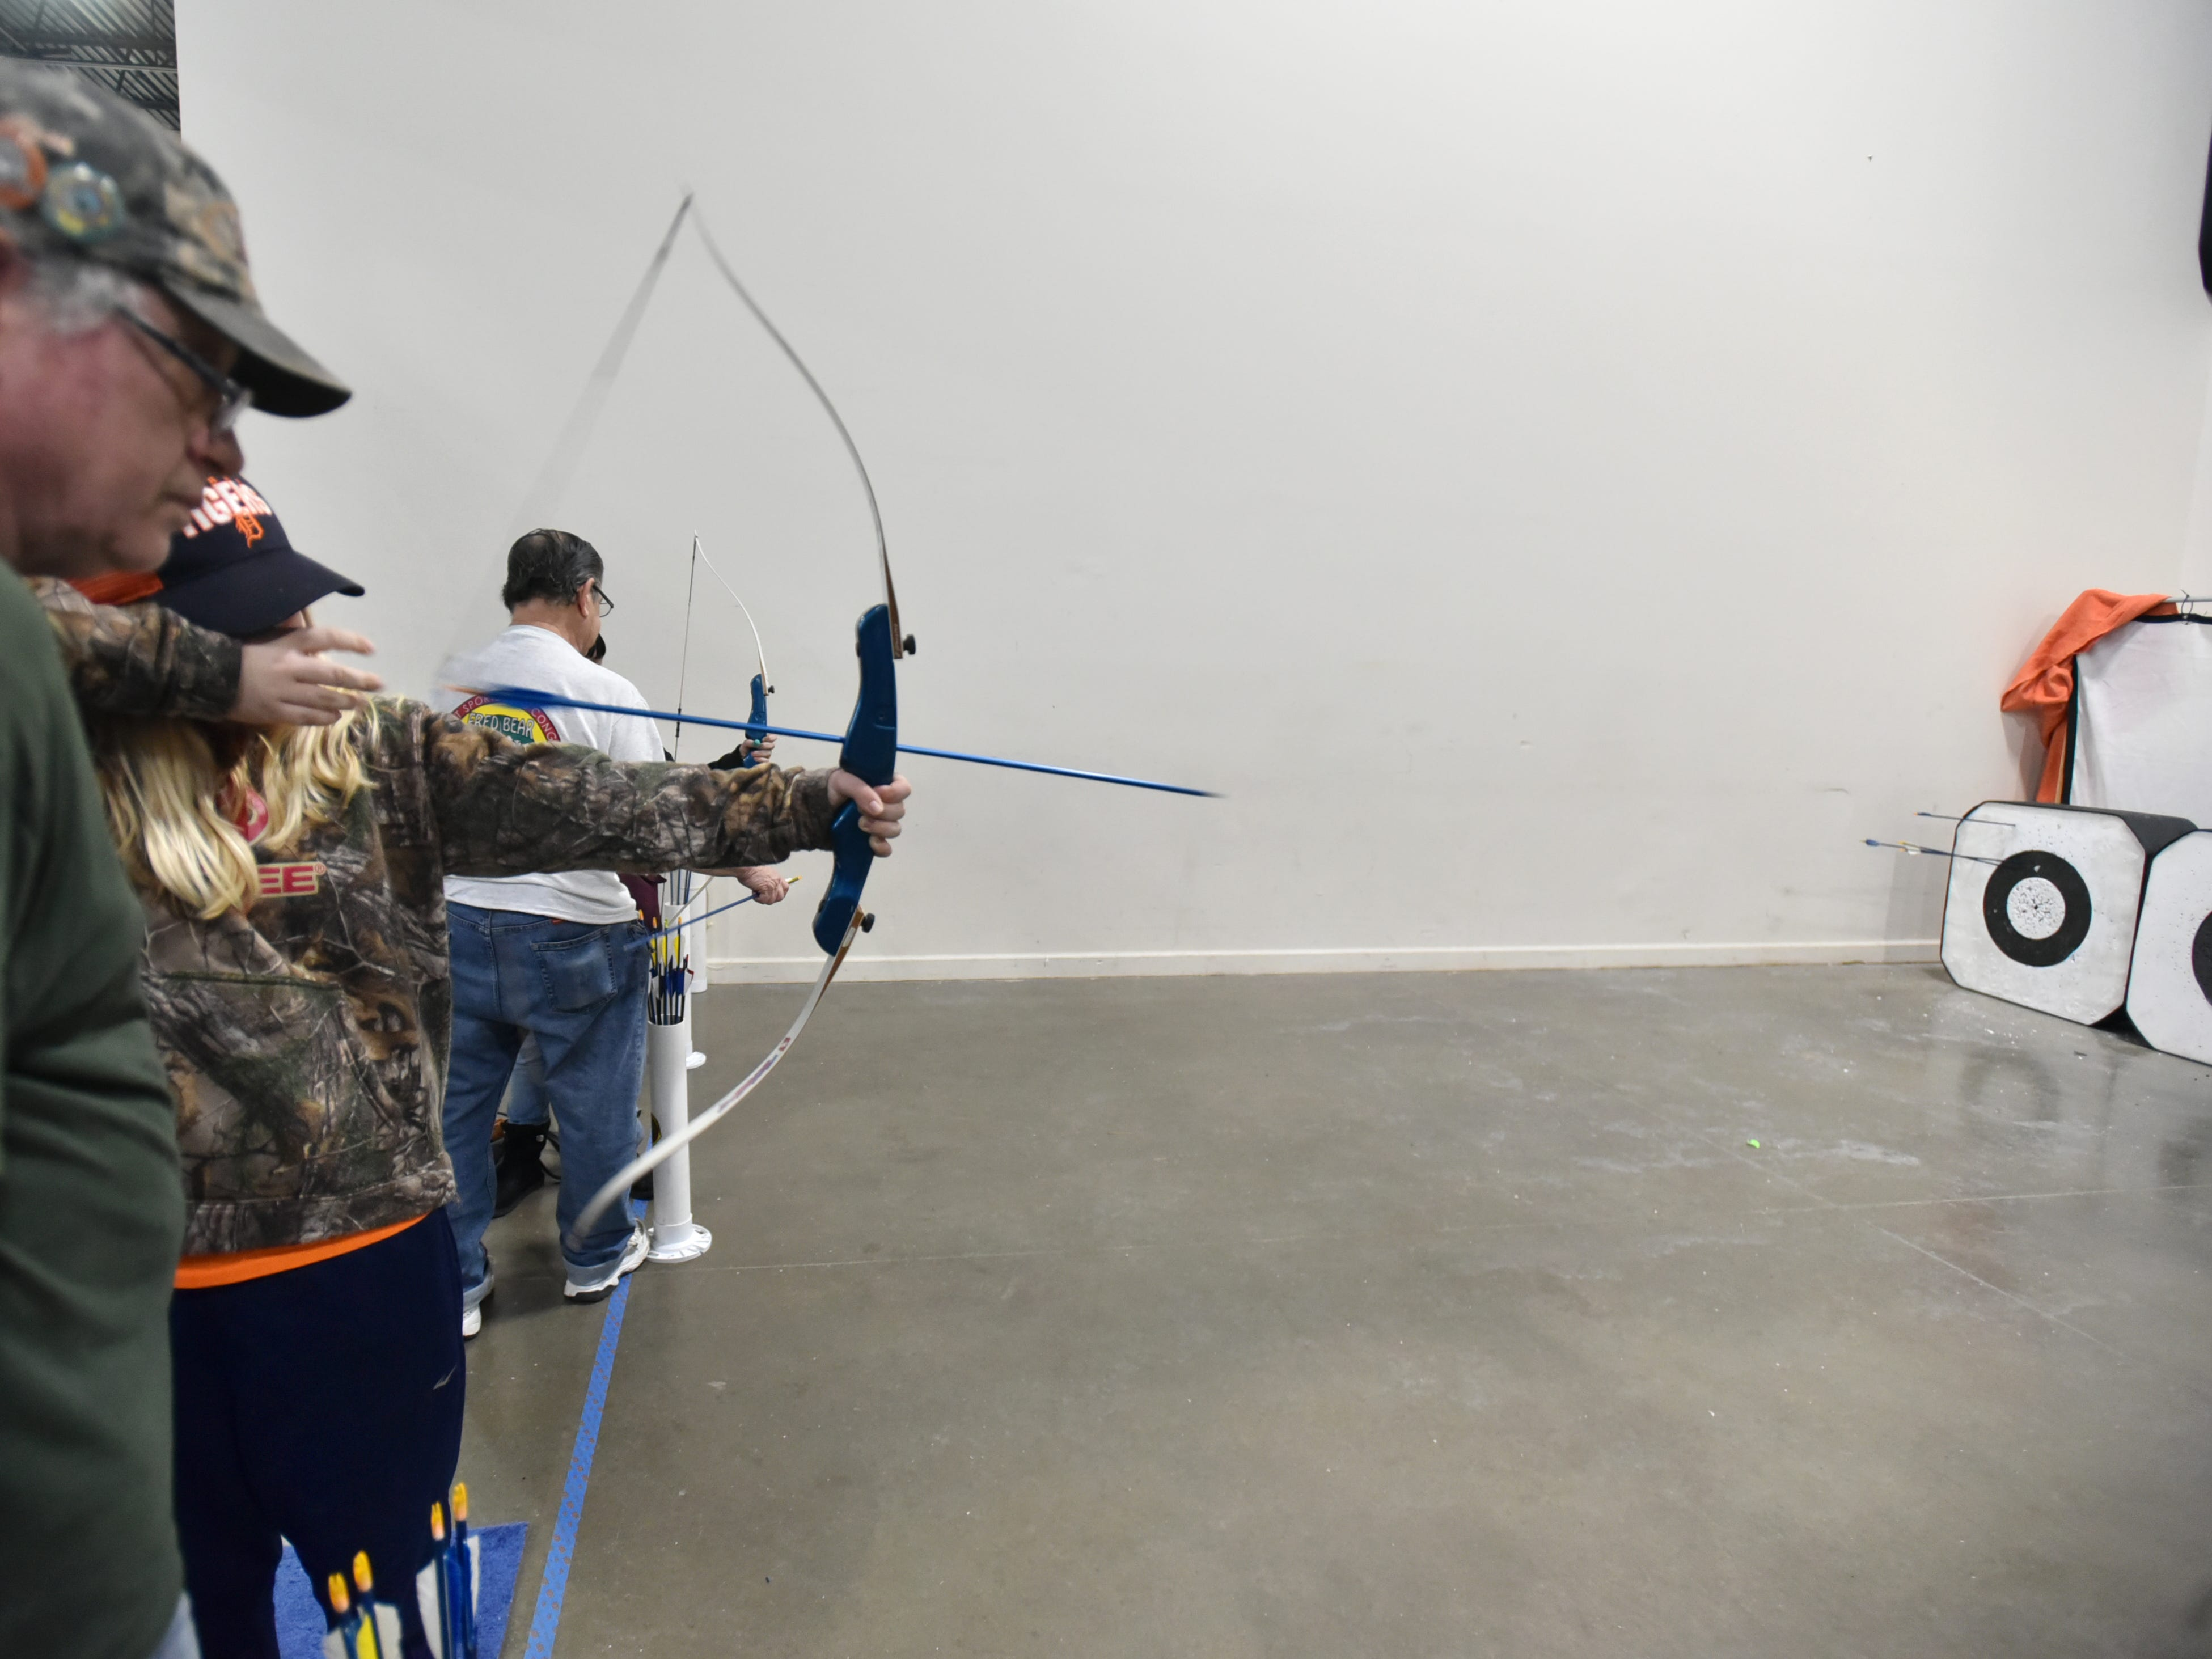 Alyssa Antio tries her hand at some archery at the Michigan Bow Hunters exhibit at the Outdoorama.